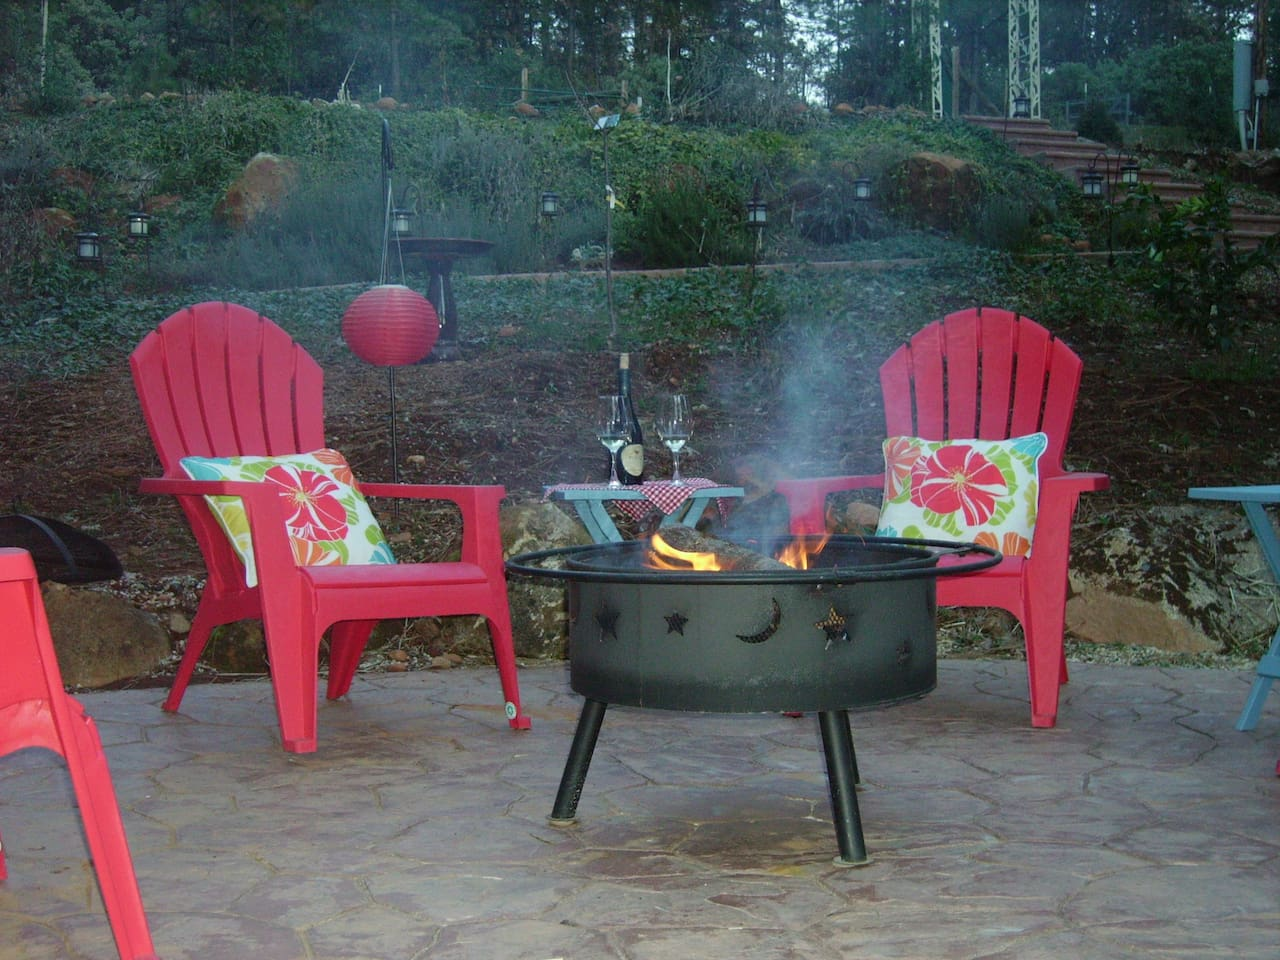 Sit and rest a while on the campfire patio!